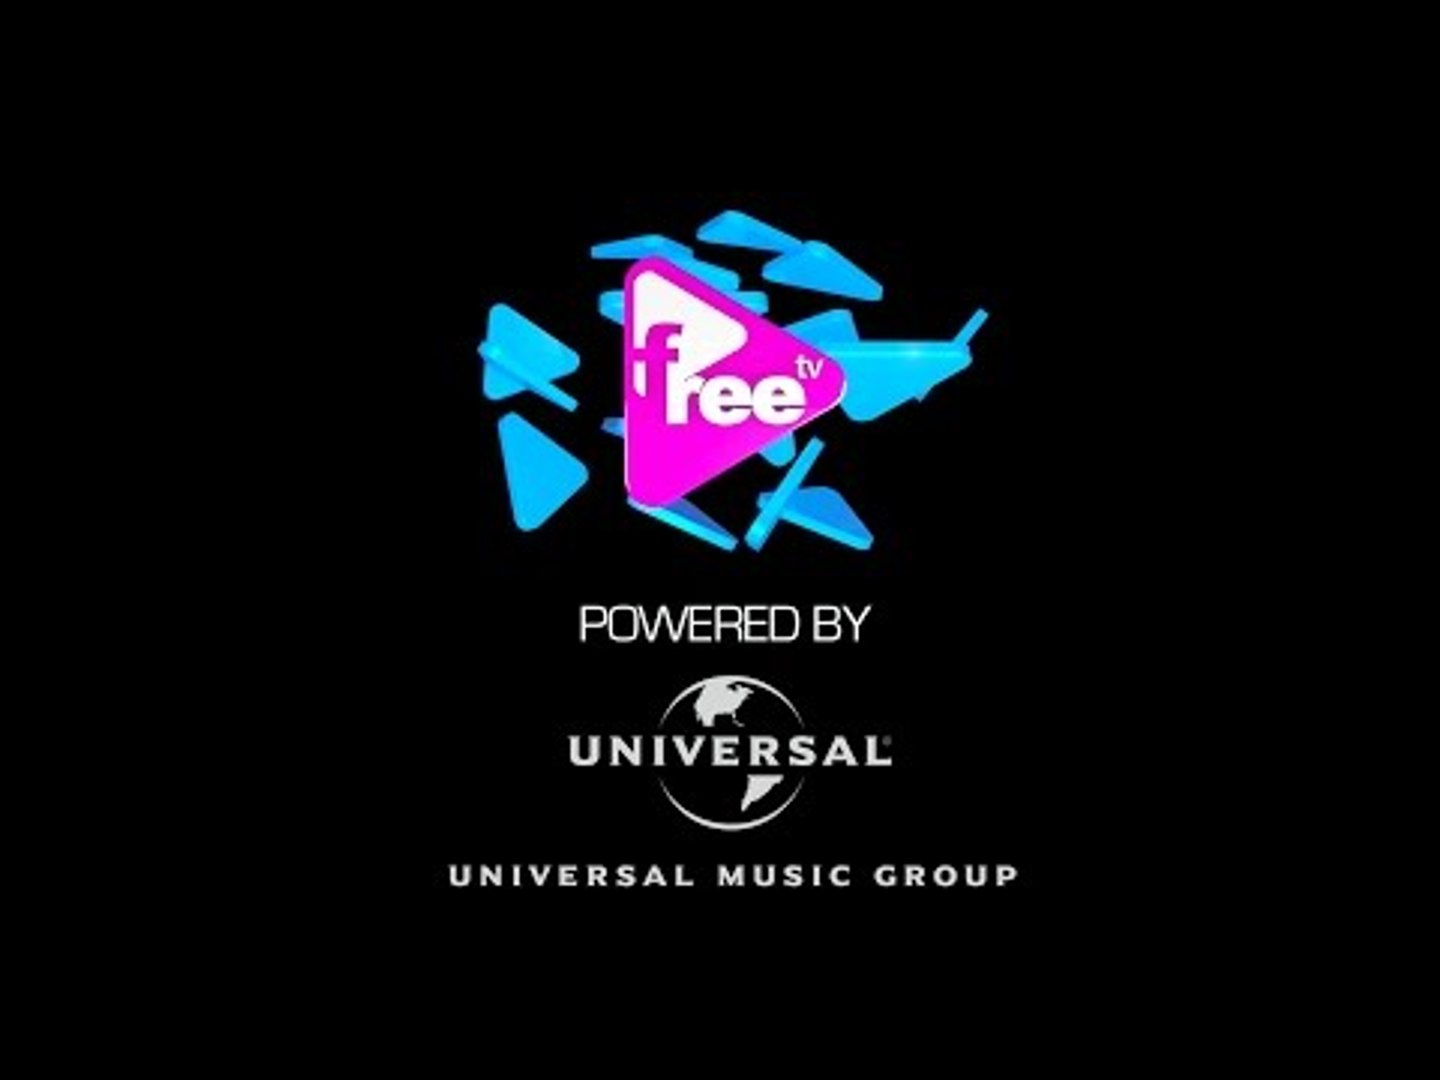 Free TV Promo - Powered By Universal Music Group 2016